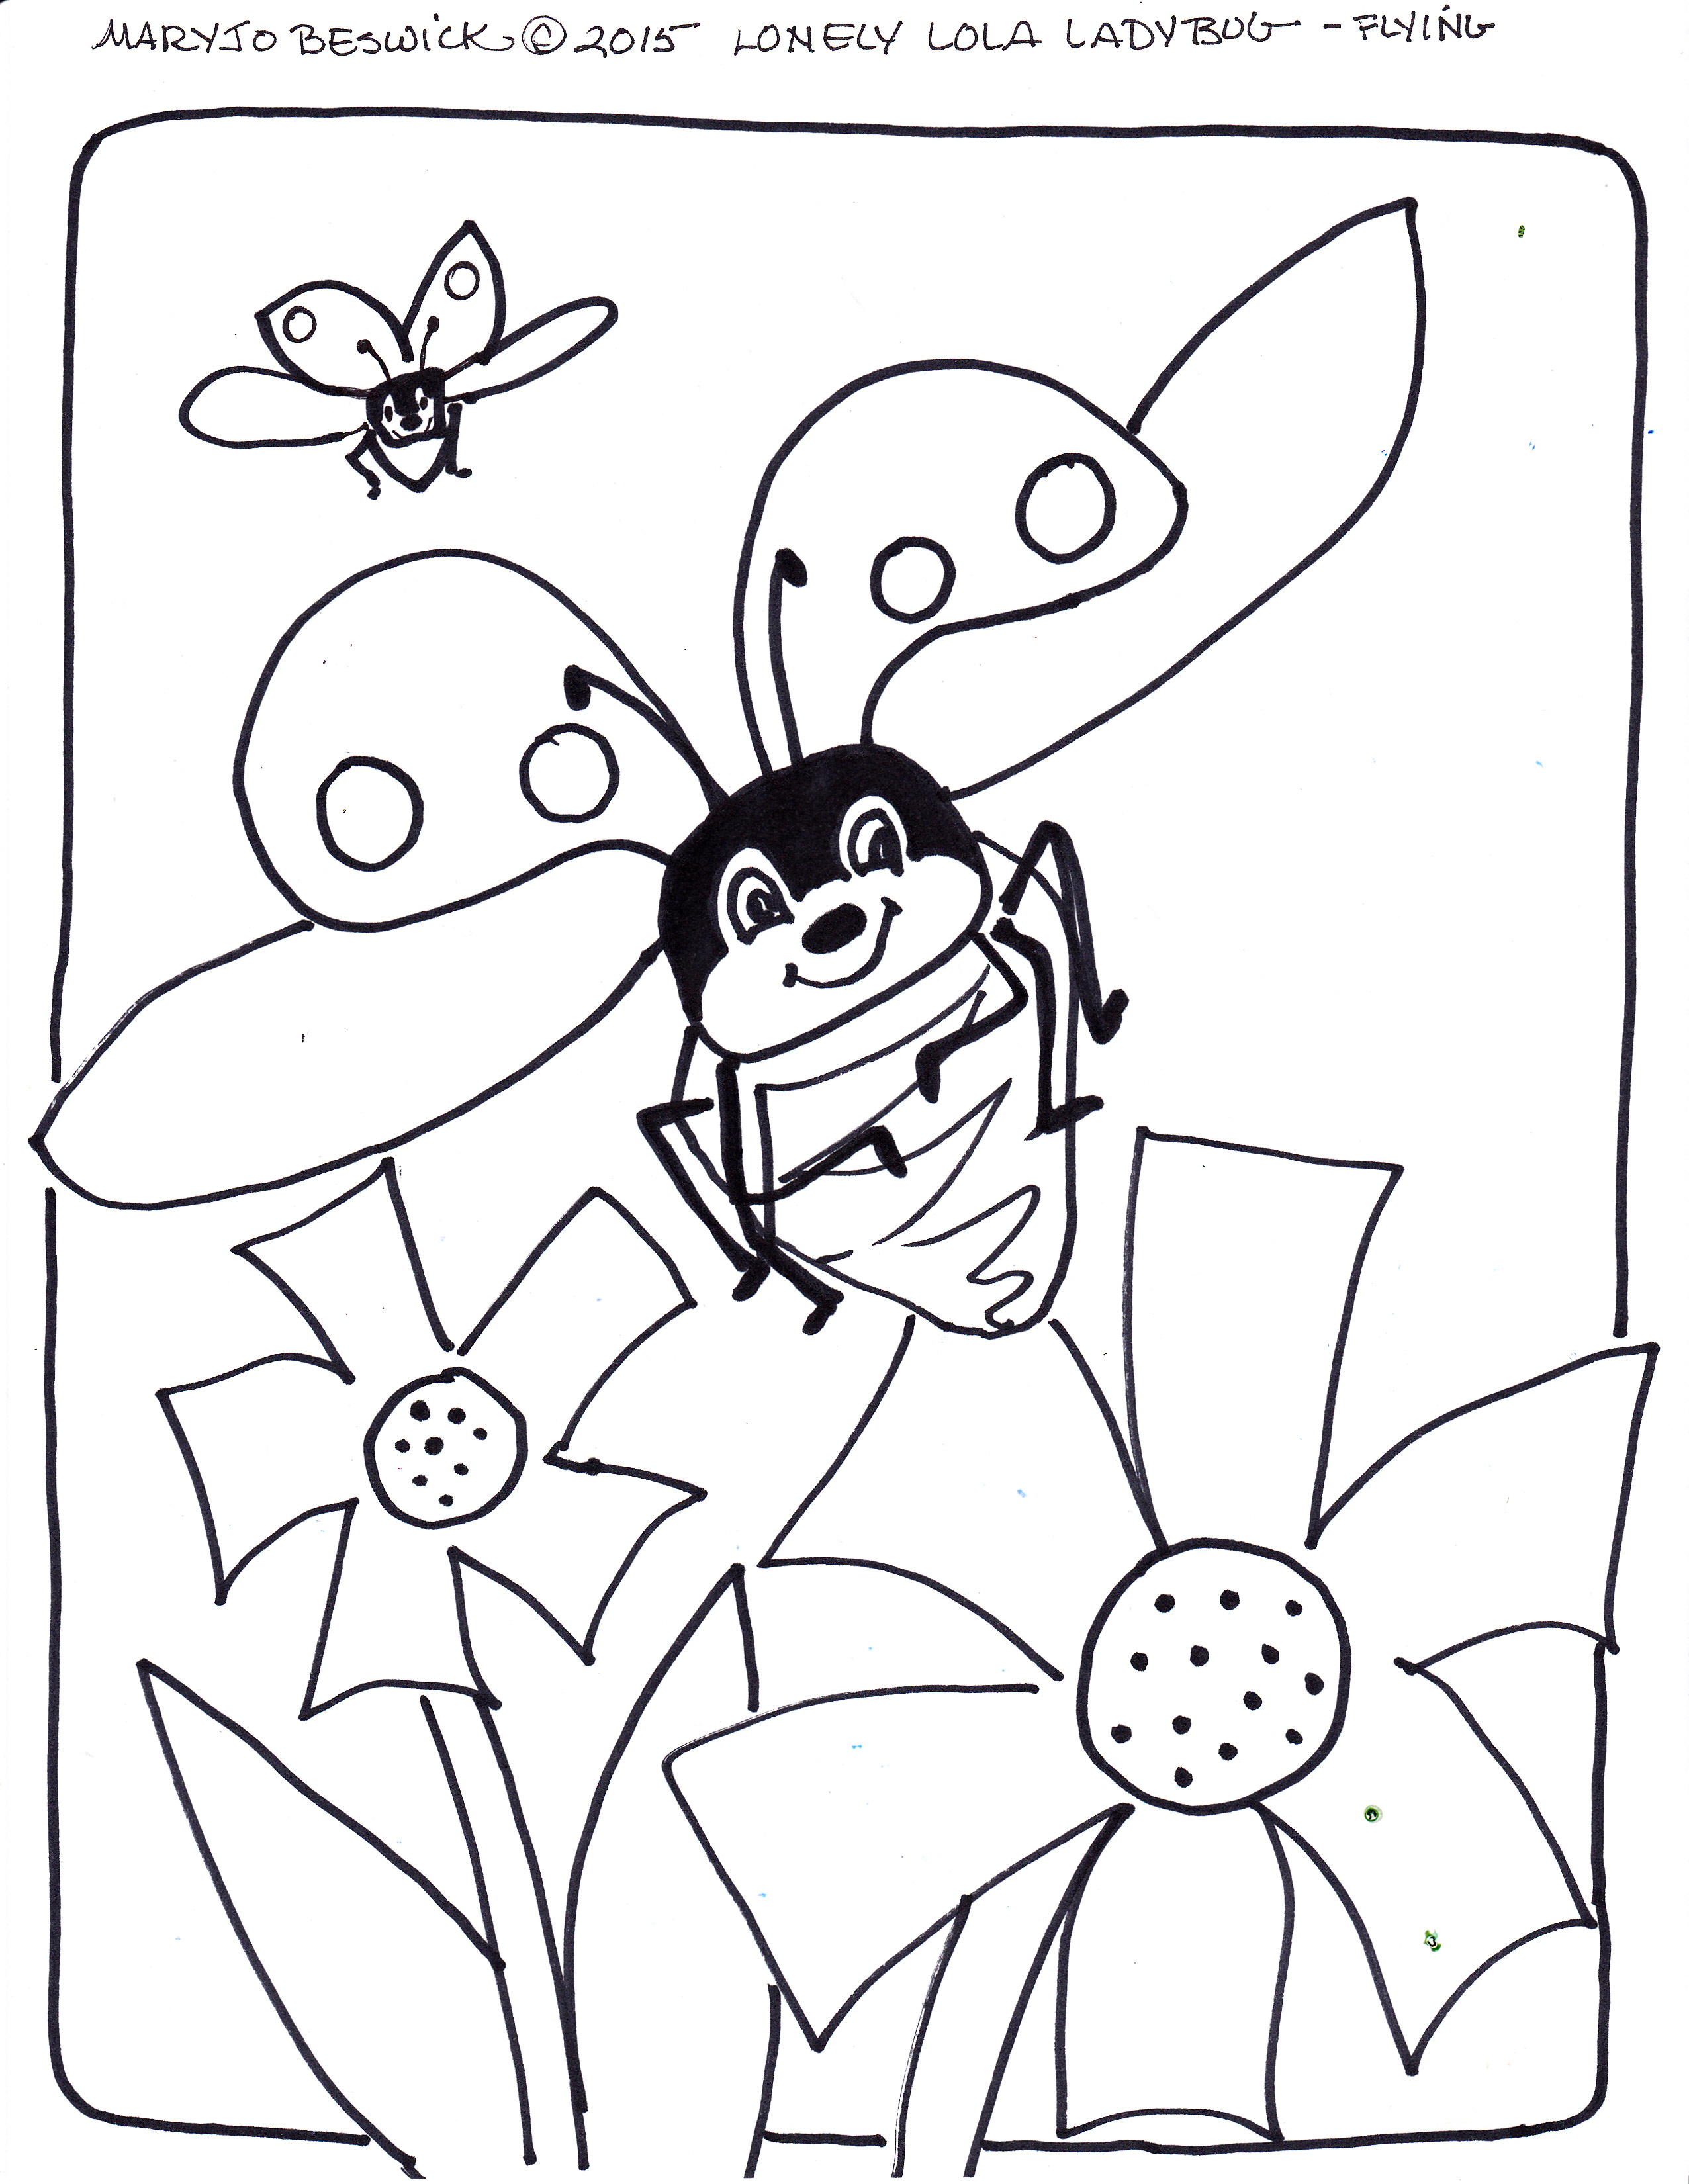 coloring pages of flying ladybugs - photo#2